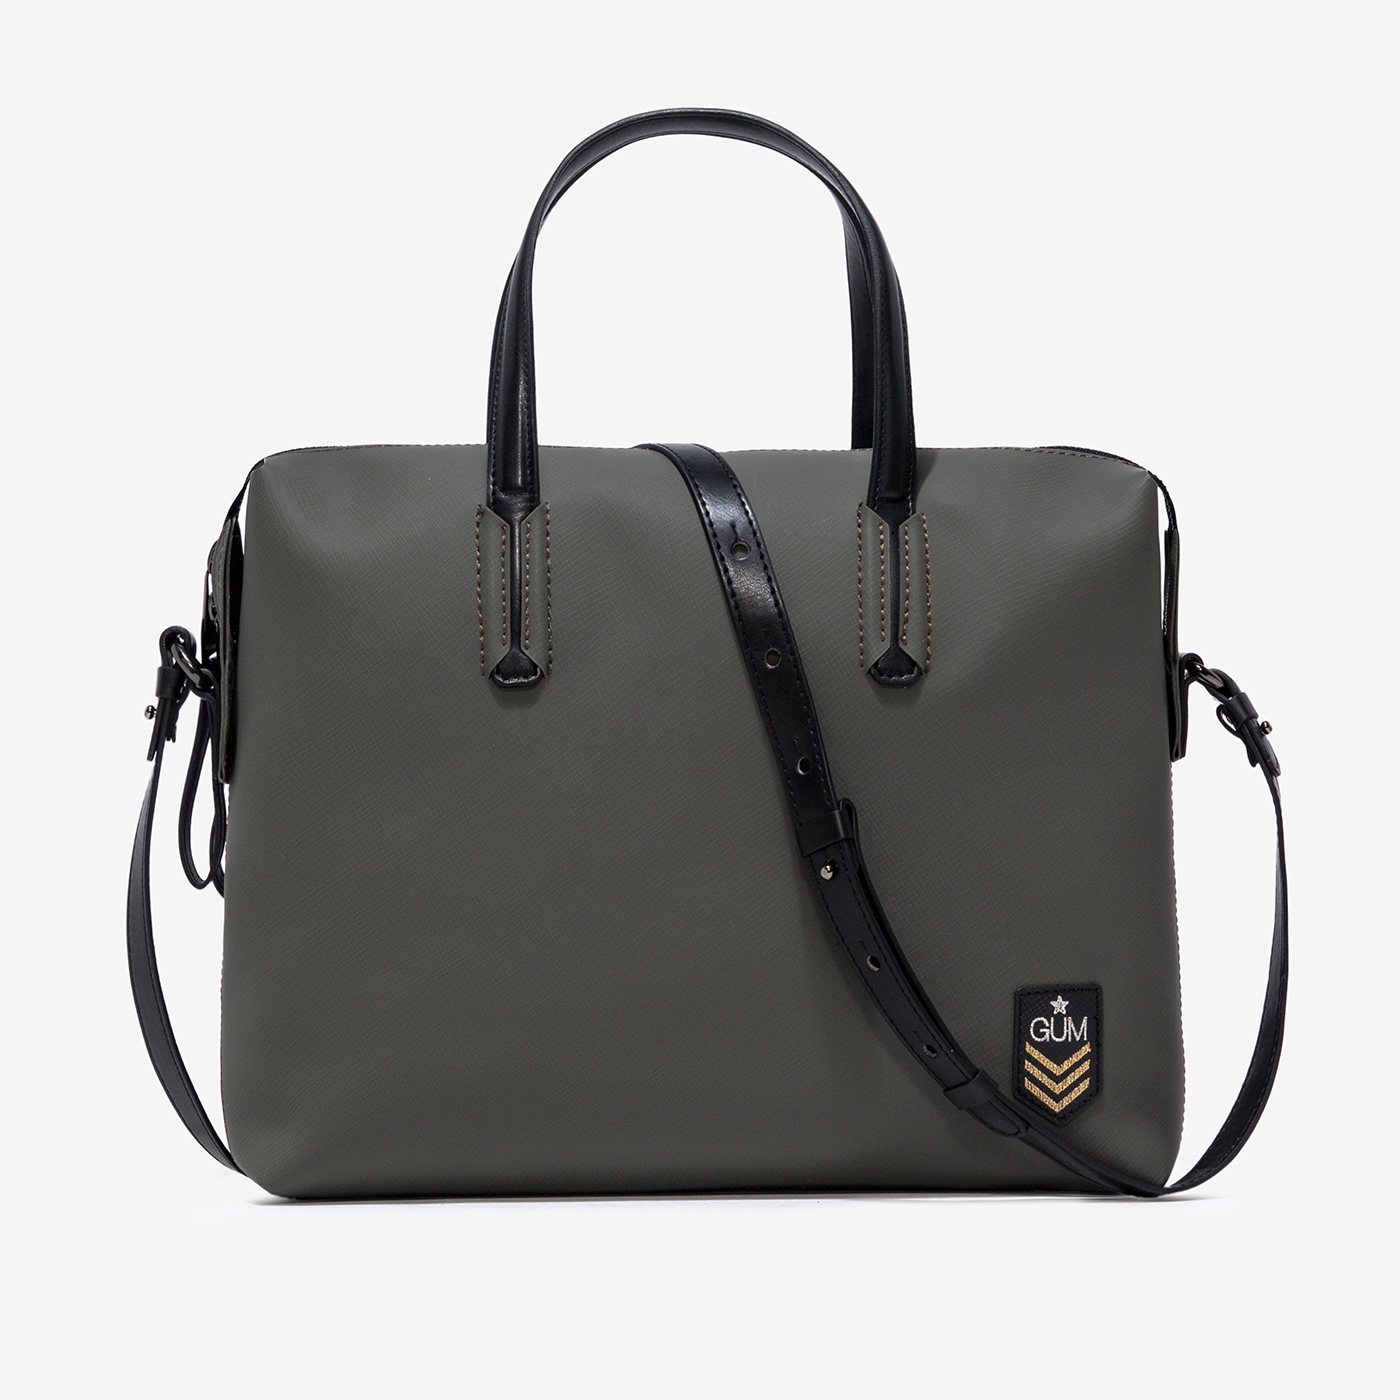 GUM: MILITARY PATTERN BUSINESS BAG